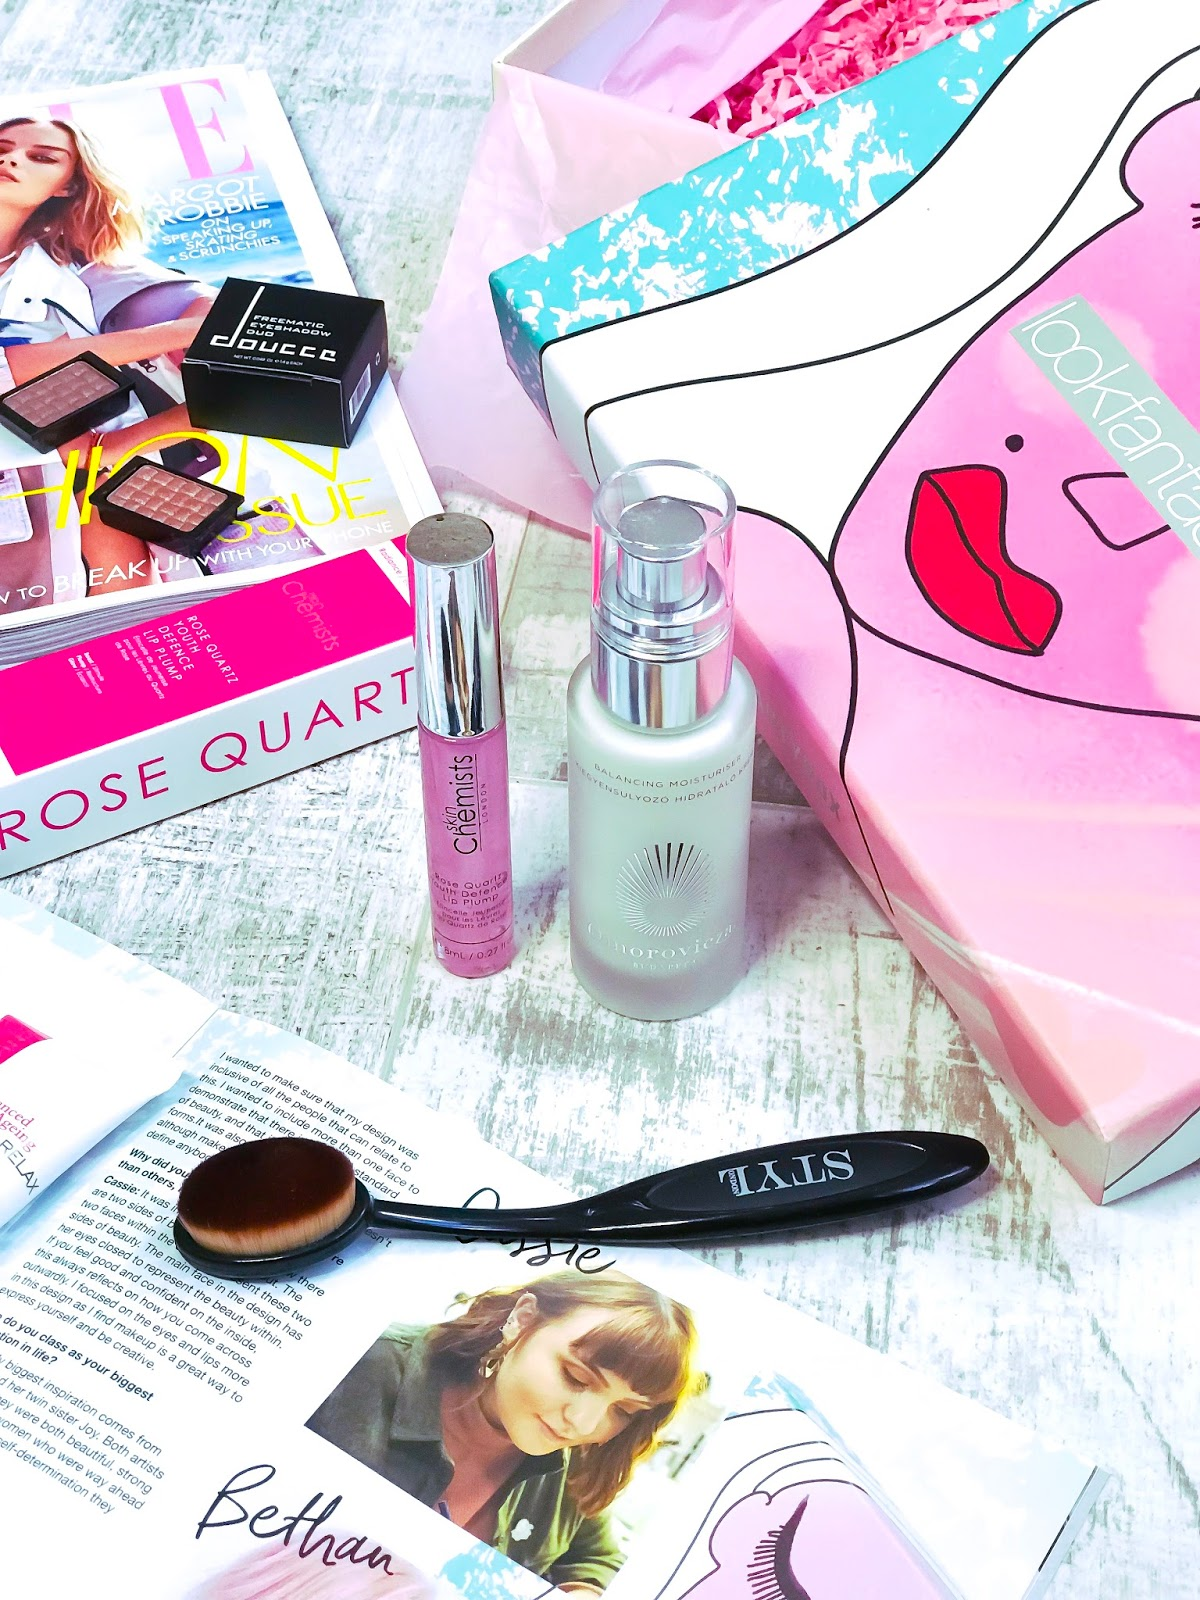 Look Fantastic beauty box review whats inside value for money